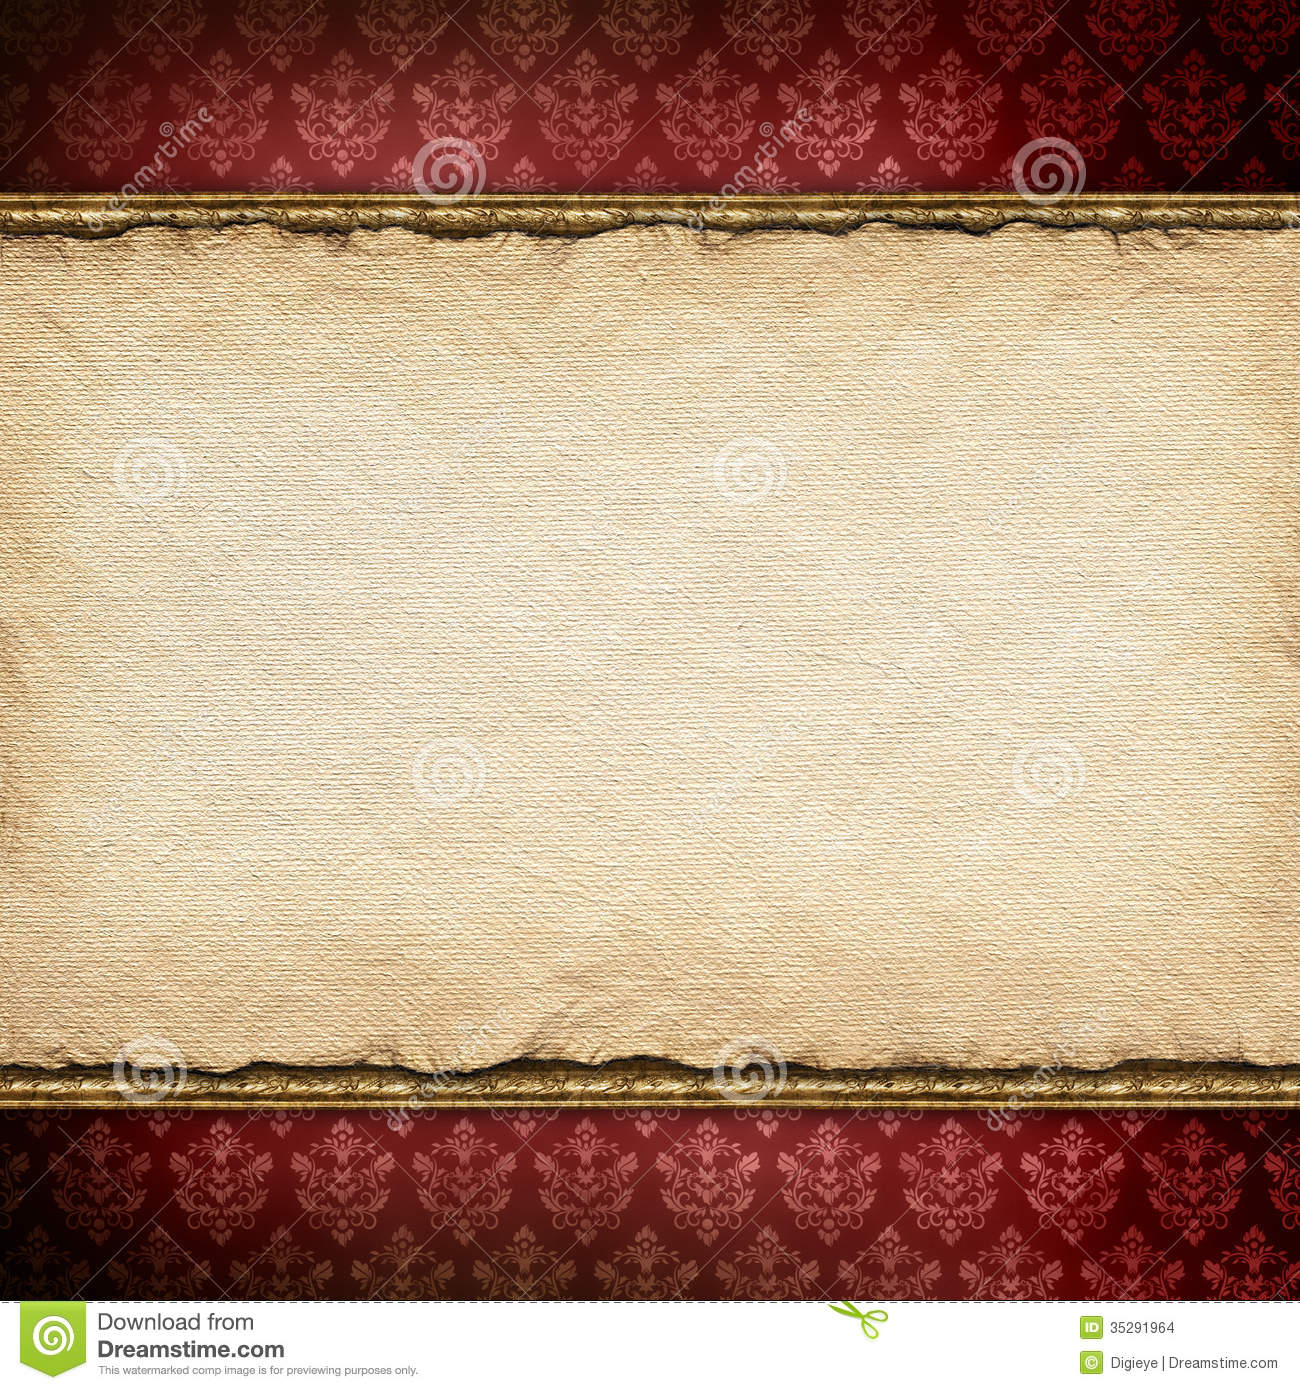 handmade paper sheet on patterned background stock photo